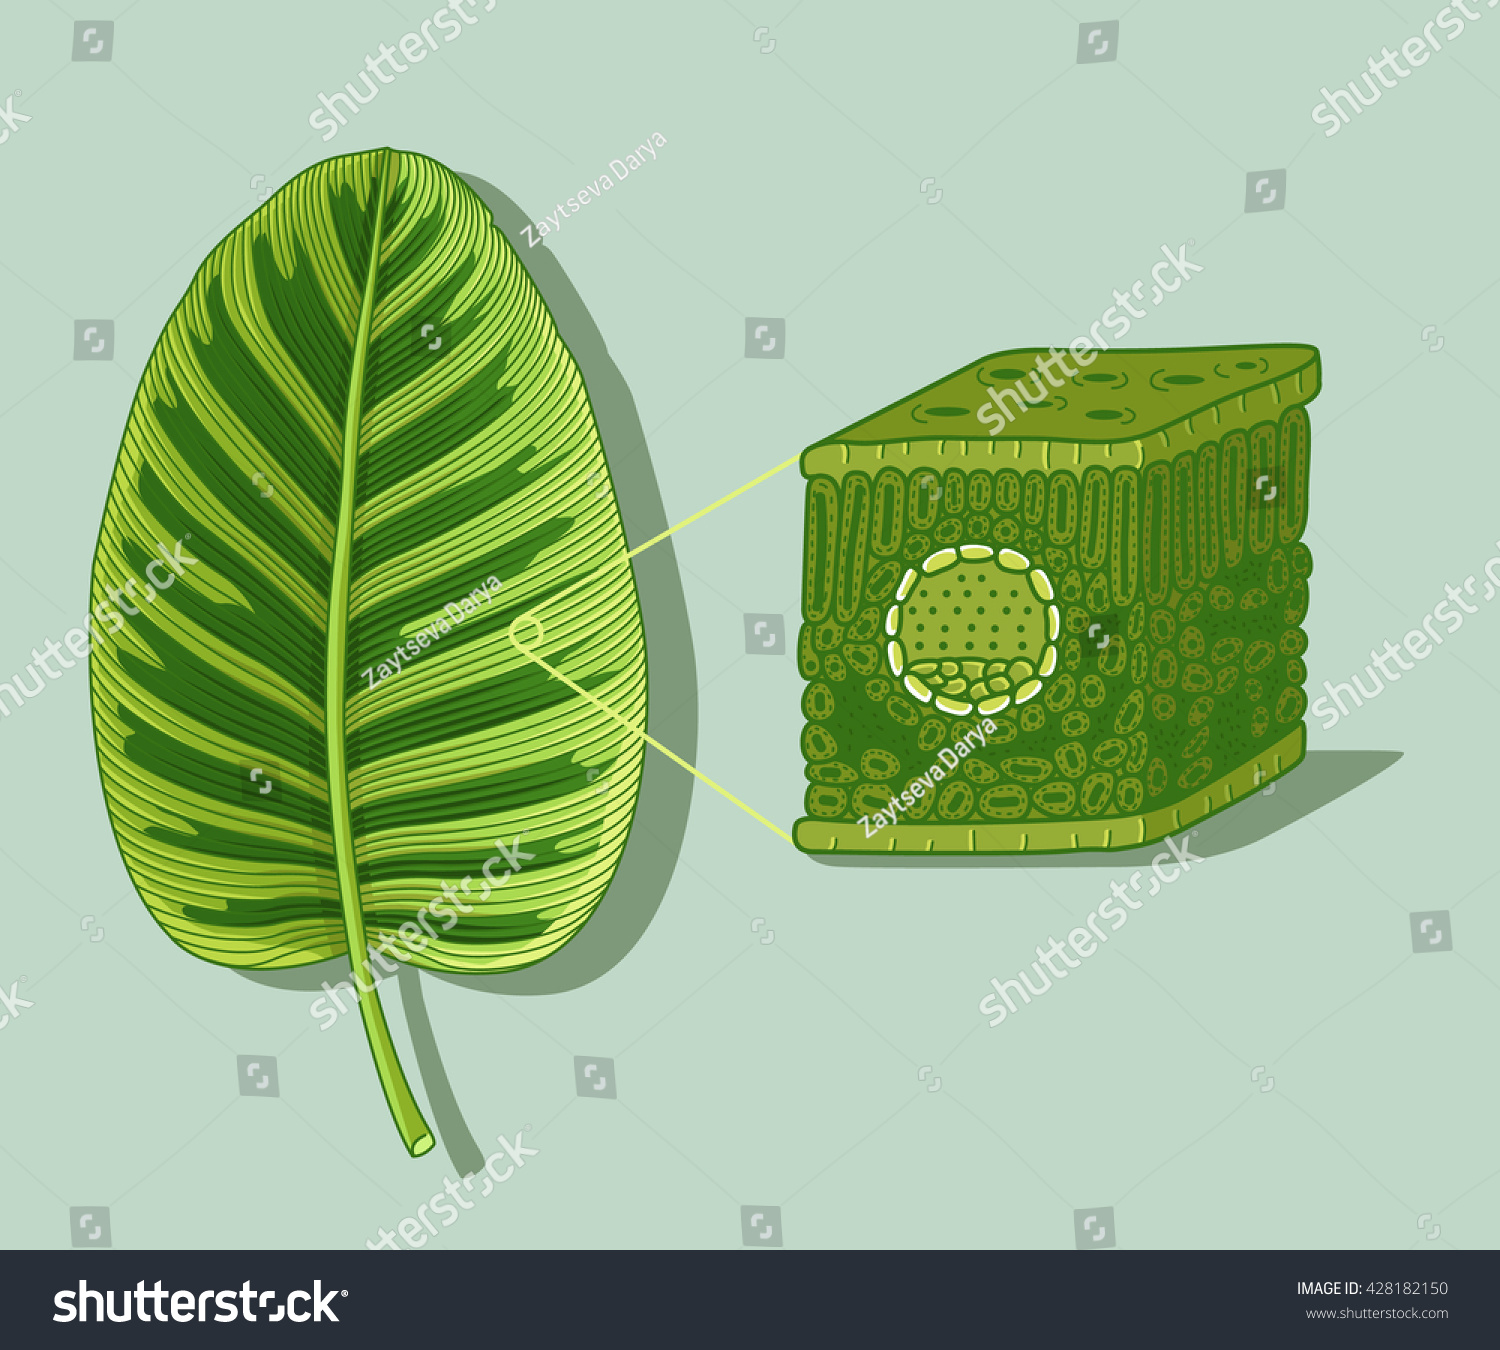 Cartoon Leaf Anatomy Structure Under Microscopy Stock